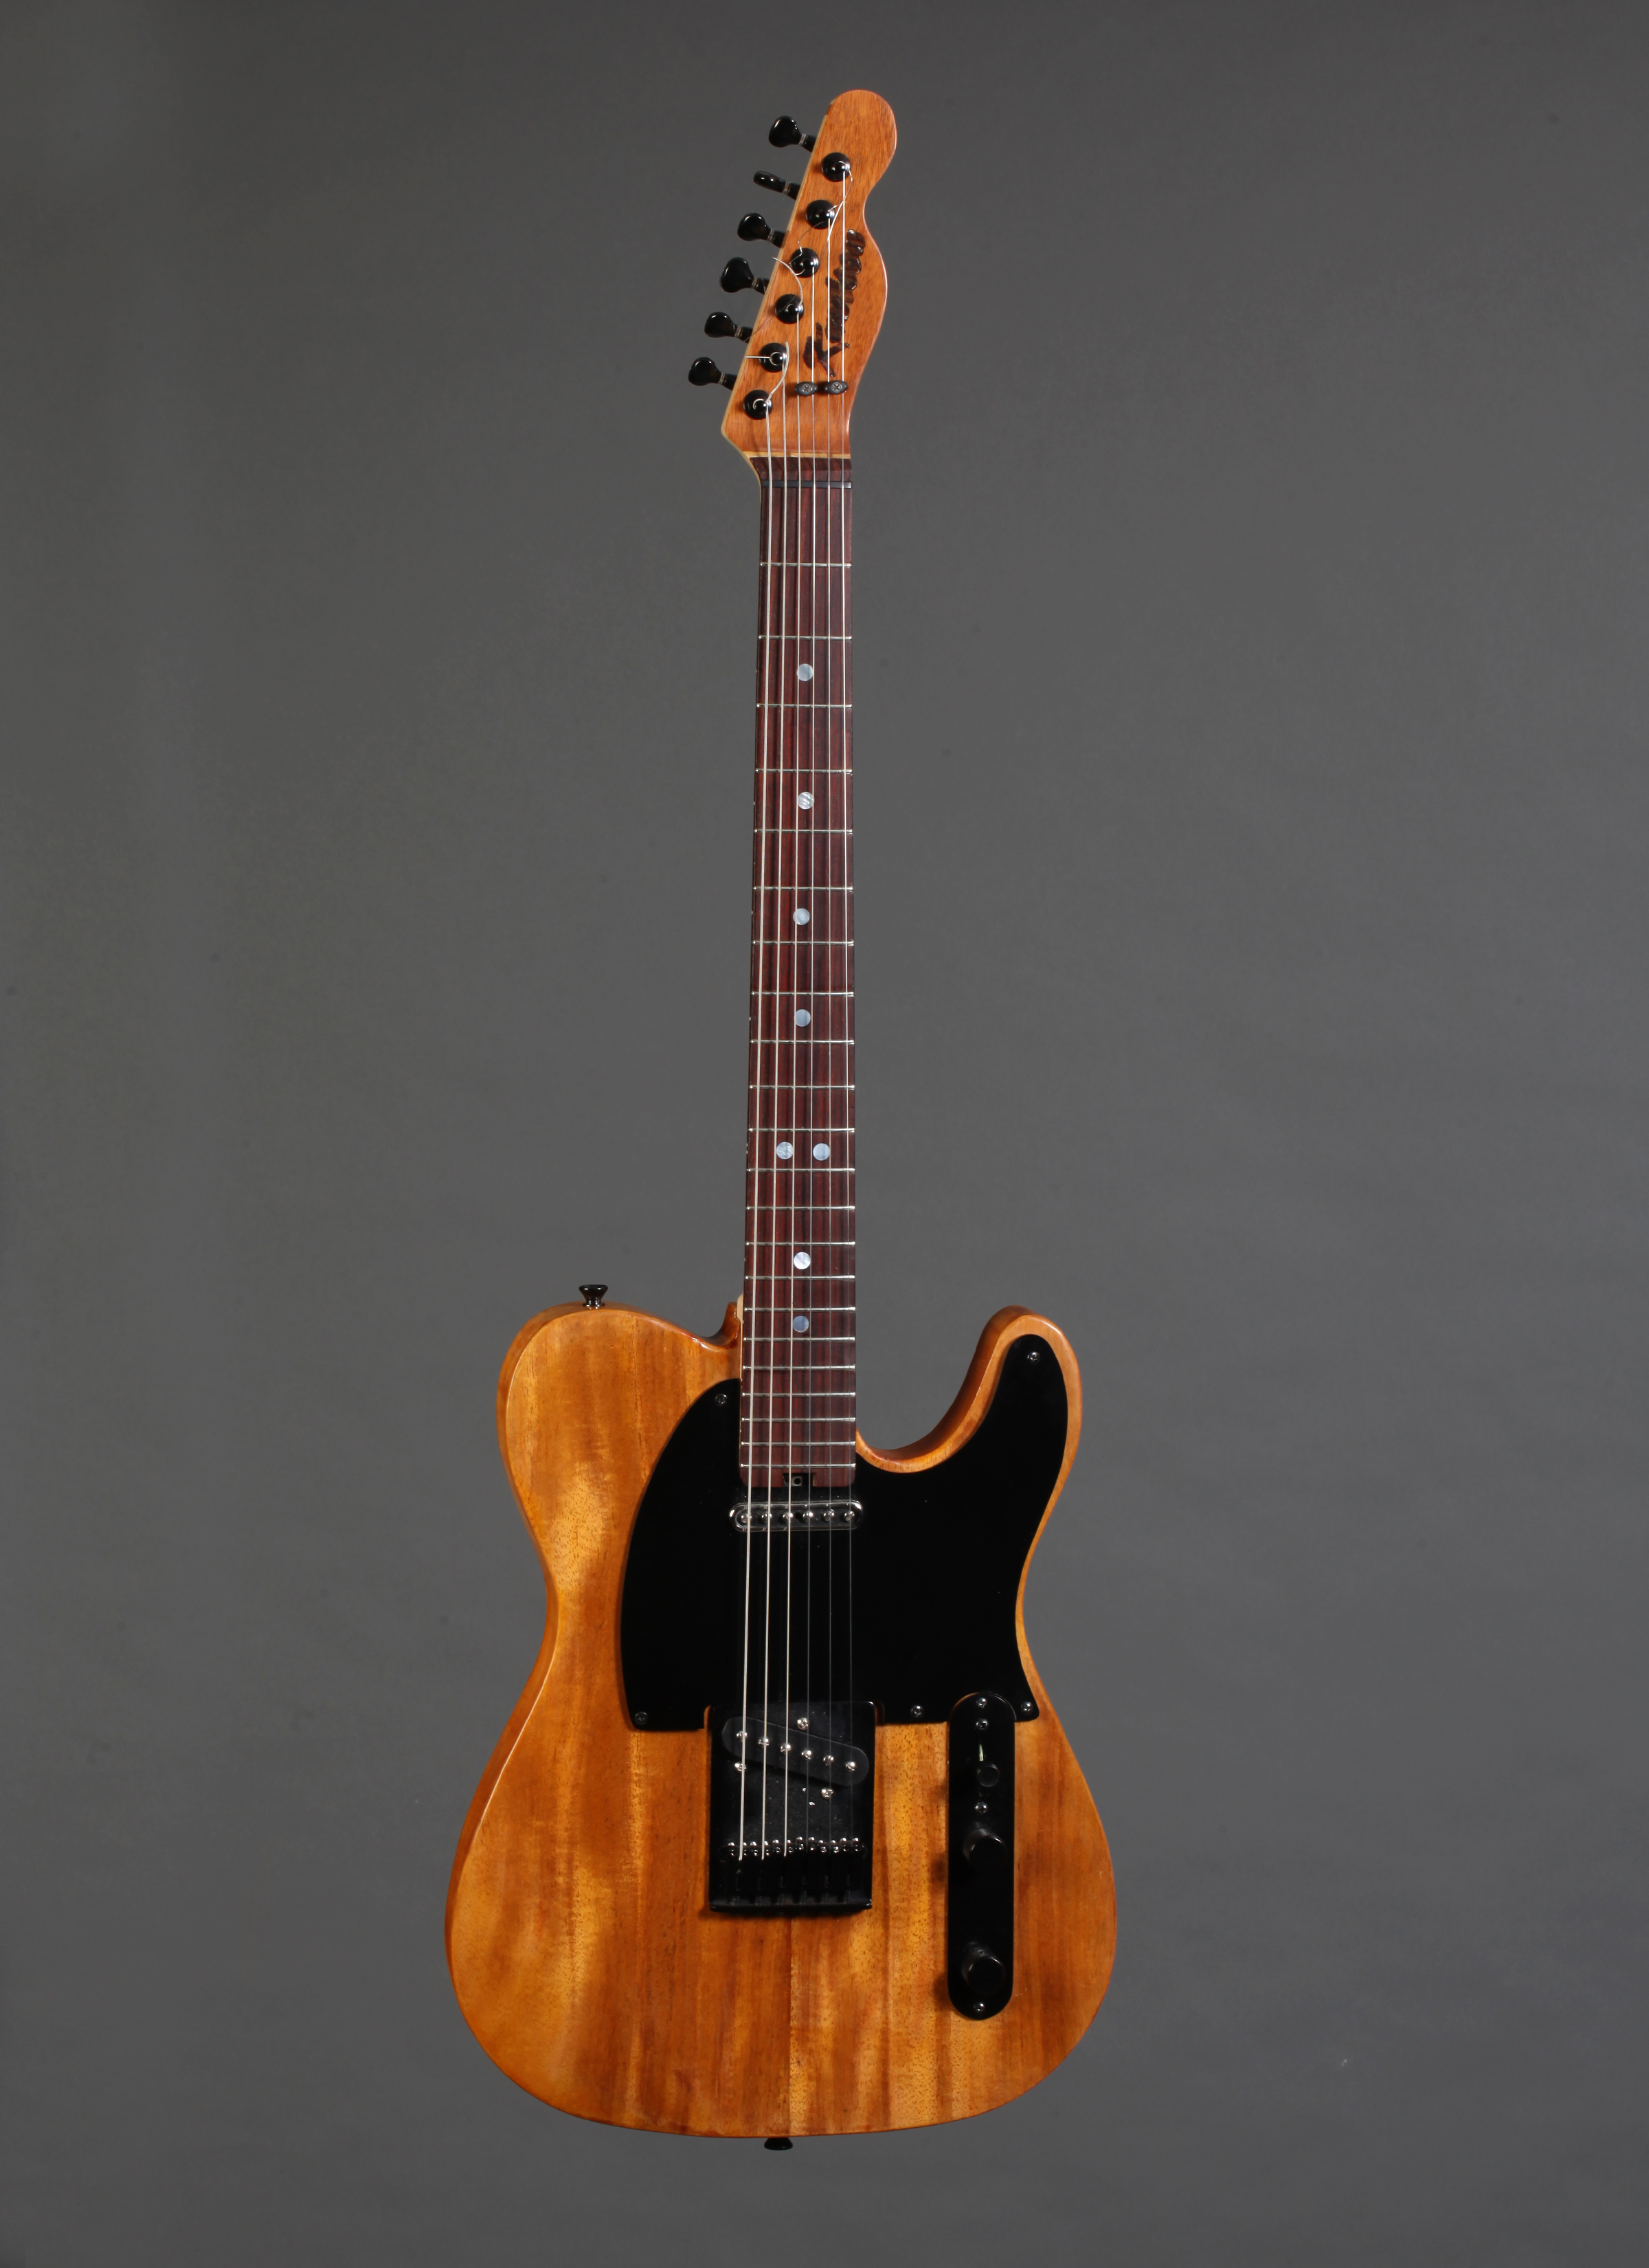 Mahogany Telecaster with Fralin Steel Pole 42 pickups.